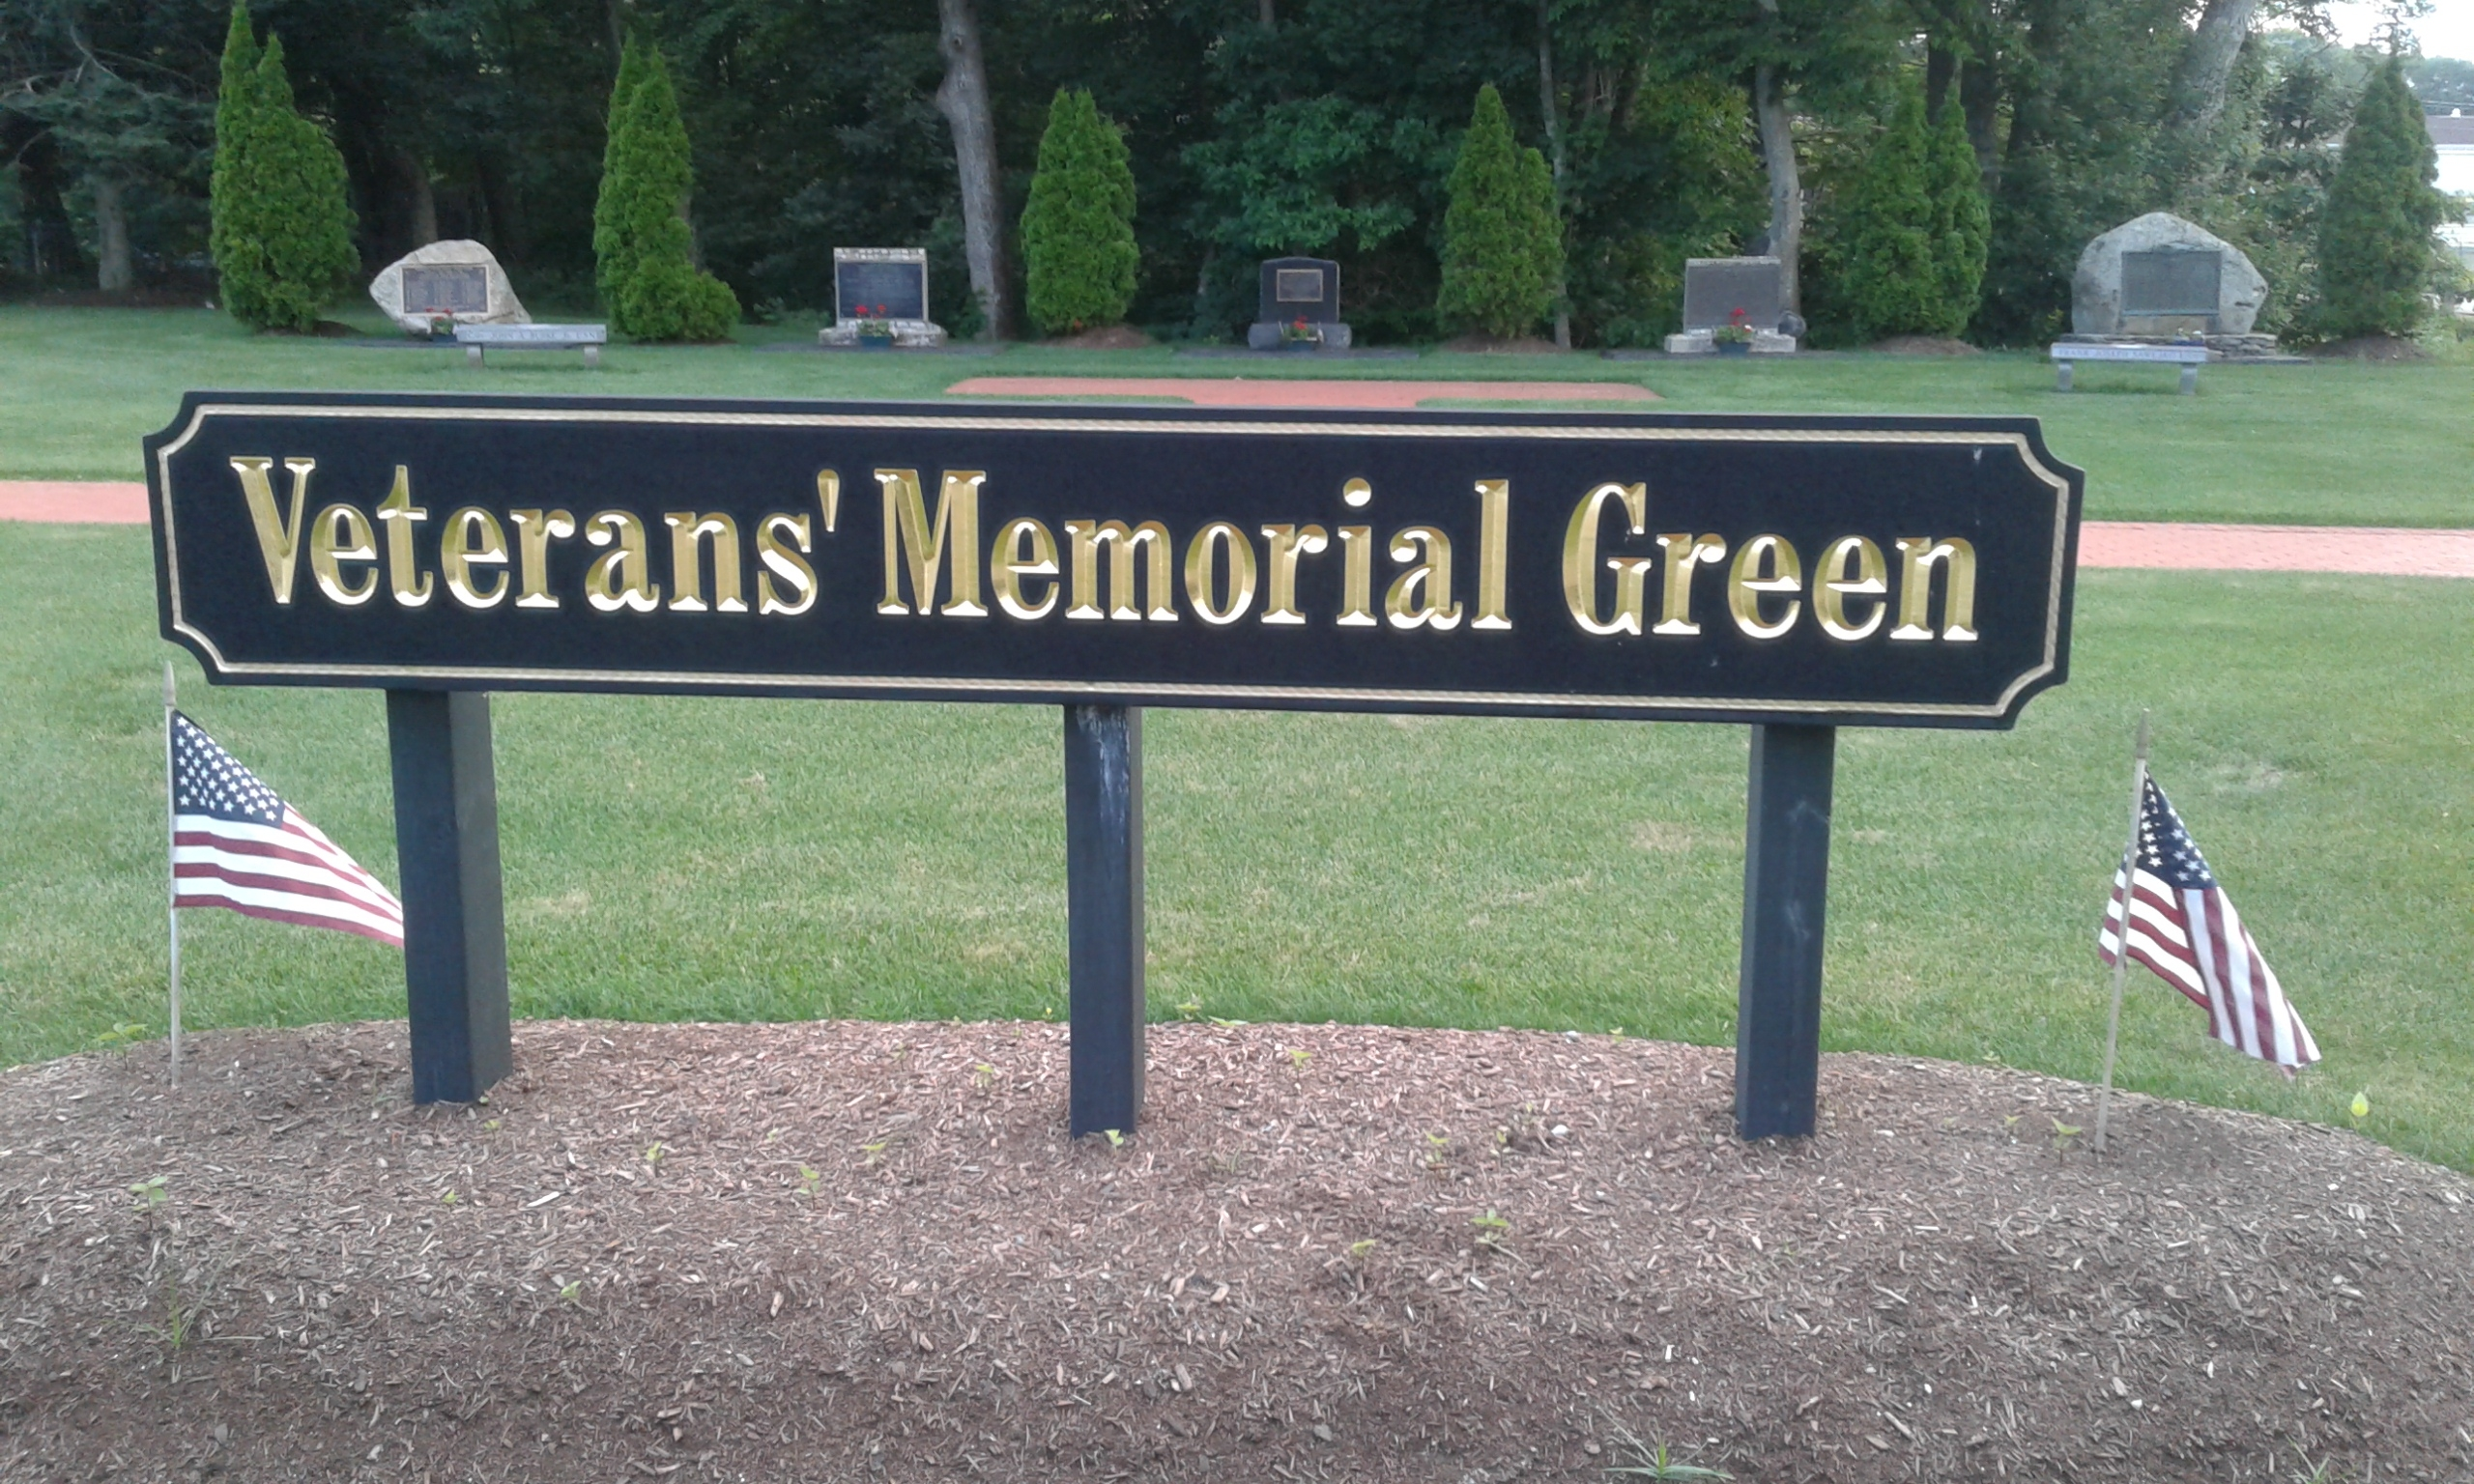 Veterans Memorial Green